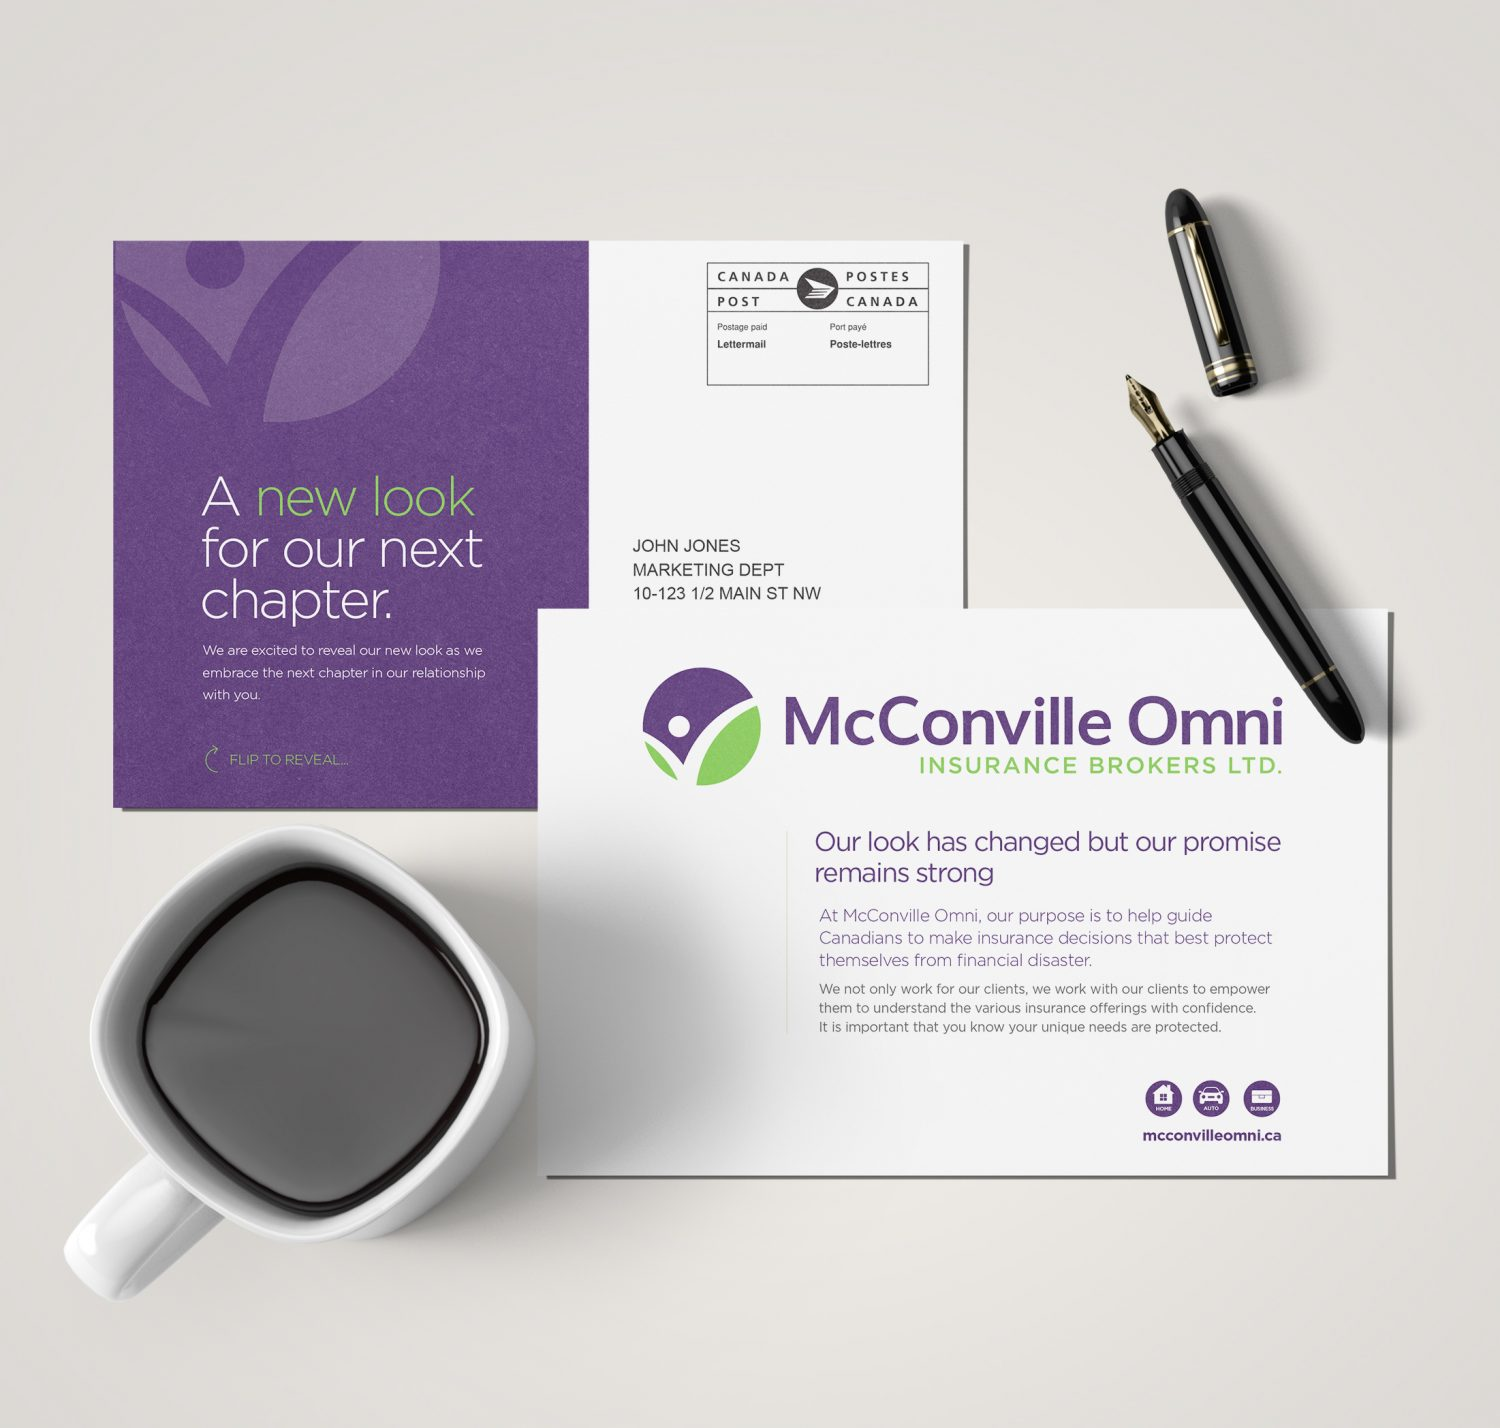 McConville Omni Postcard Marketing Materials